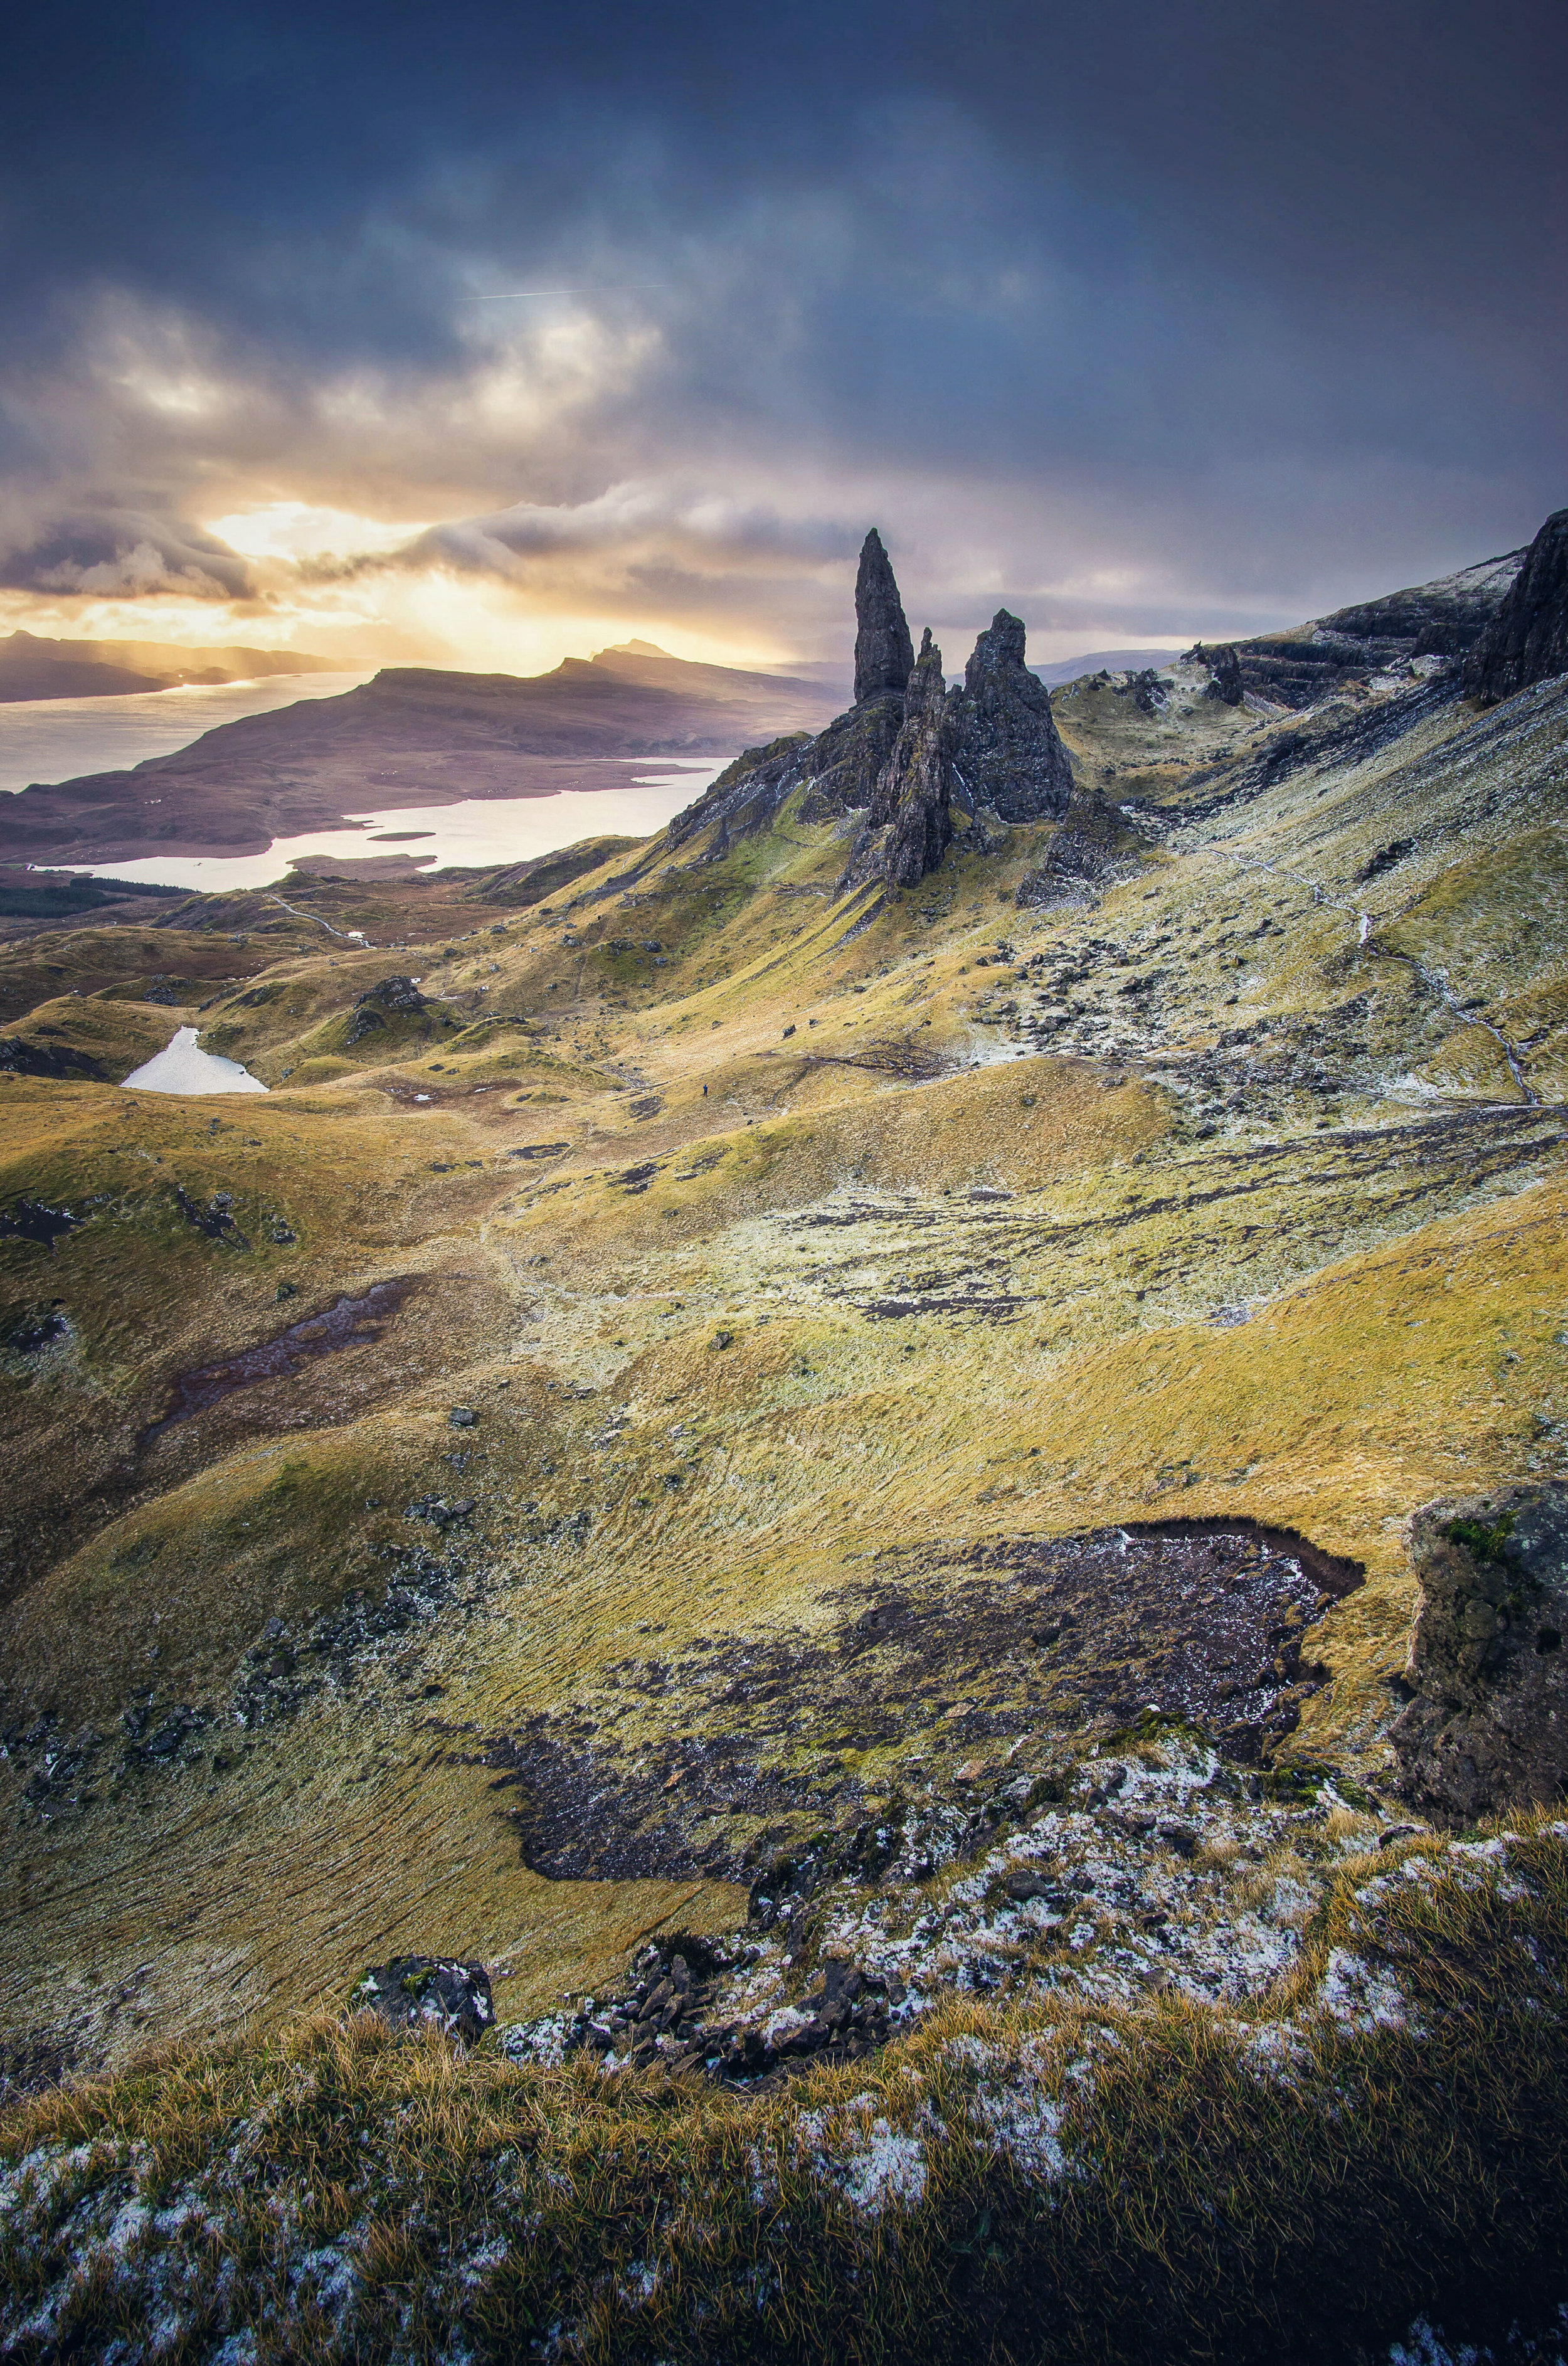 The Old Man of Storr #2